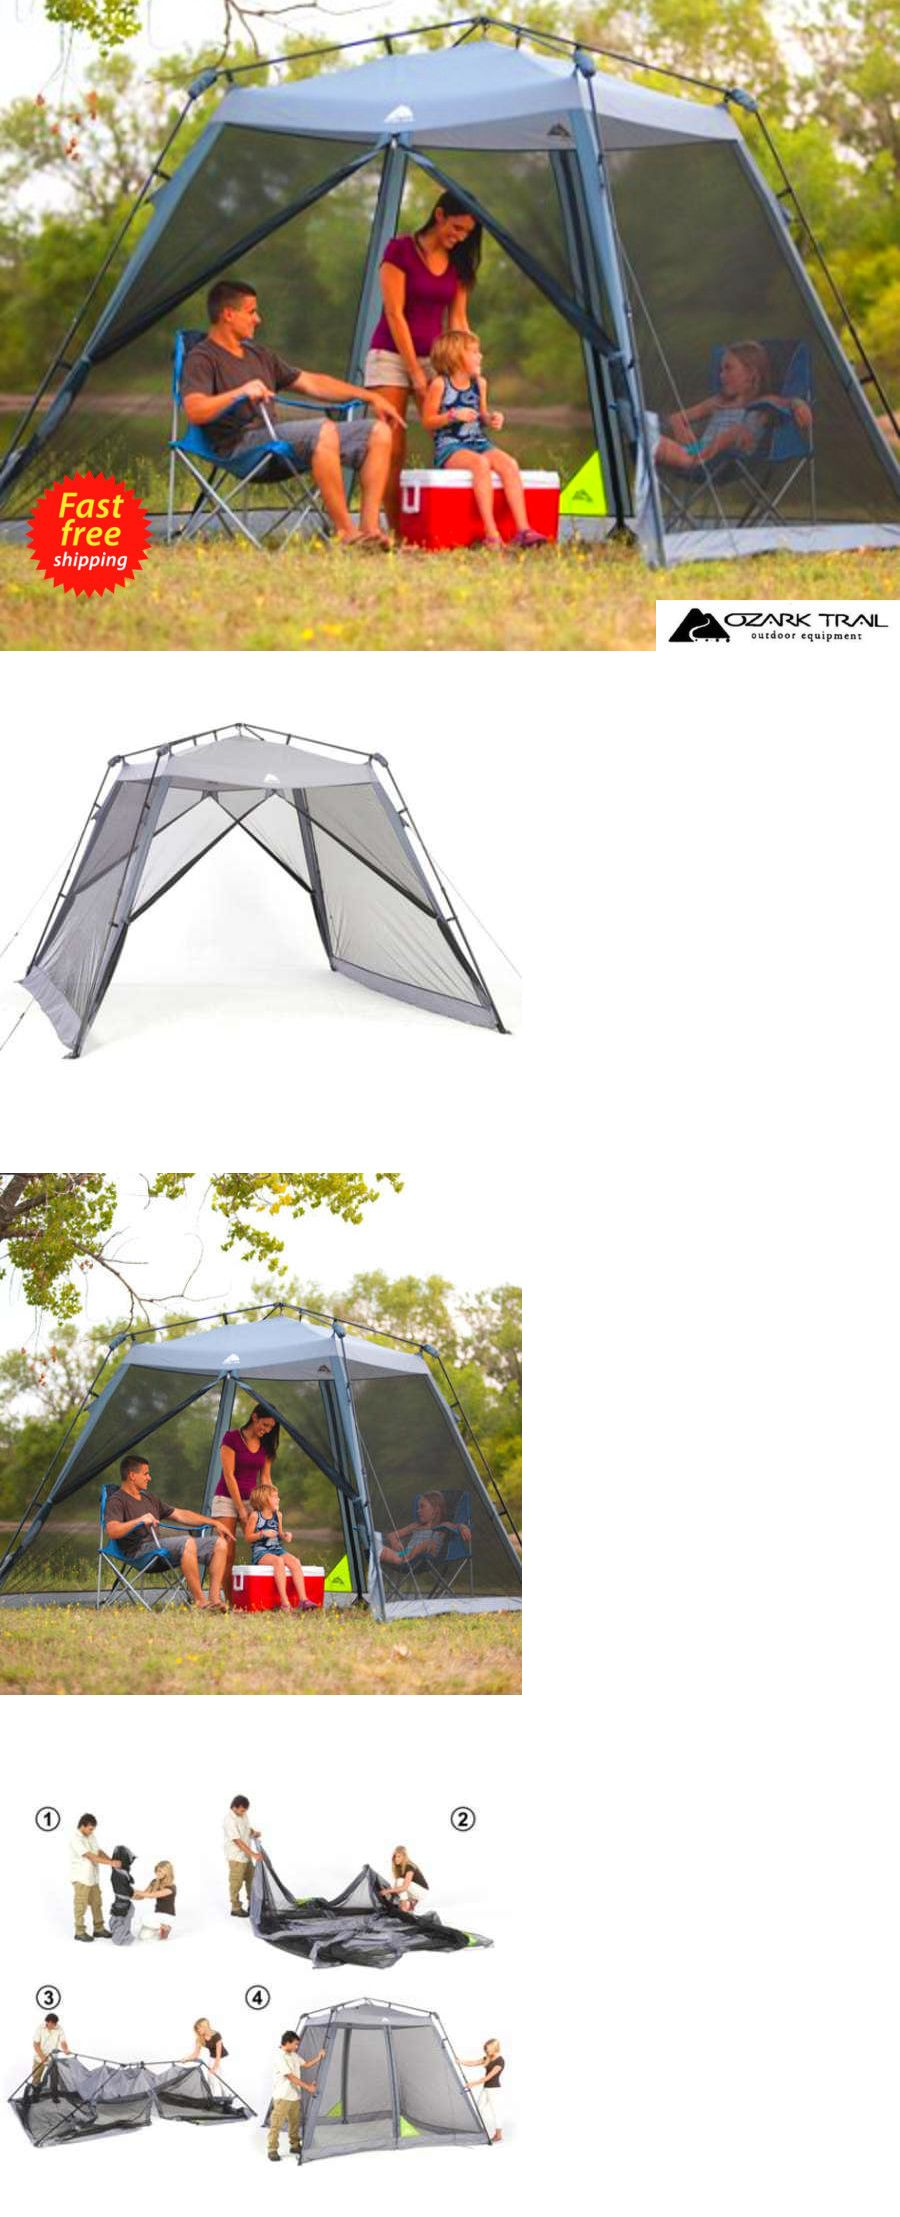 Canopies and Shelters 179011 Ozark Trail 10 X 10 Instant Screen House Sun Shelter Canopy  sc 1 st  Pinterest & Canopies and Shelters 179011: Ozark Trail 10 X 10 Instant Screen ...